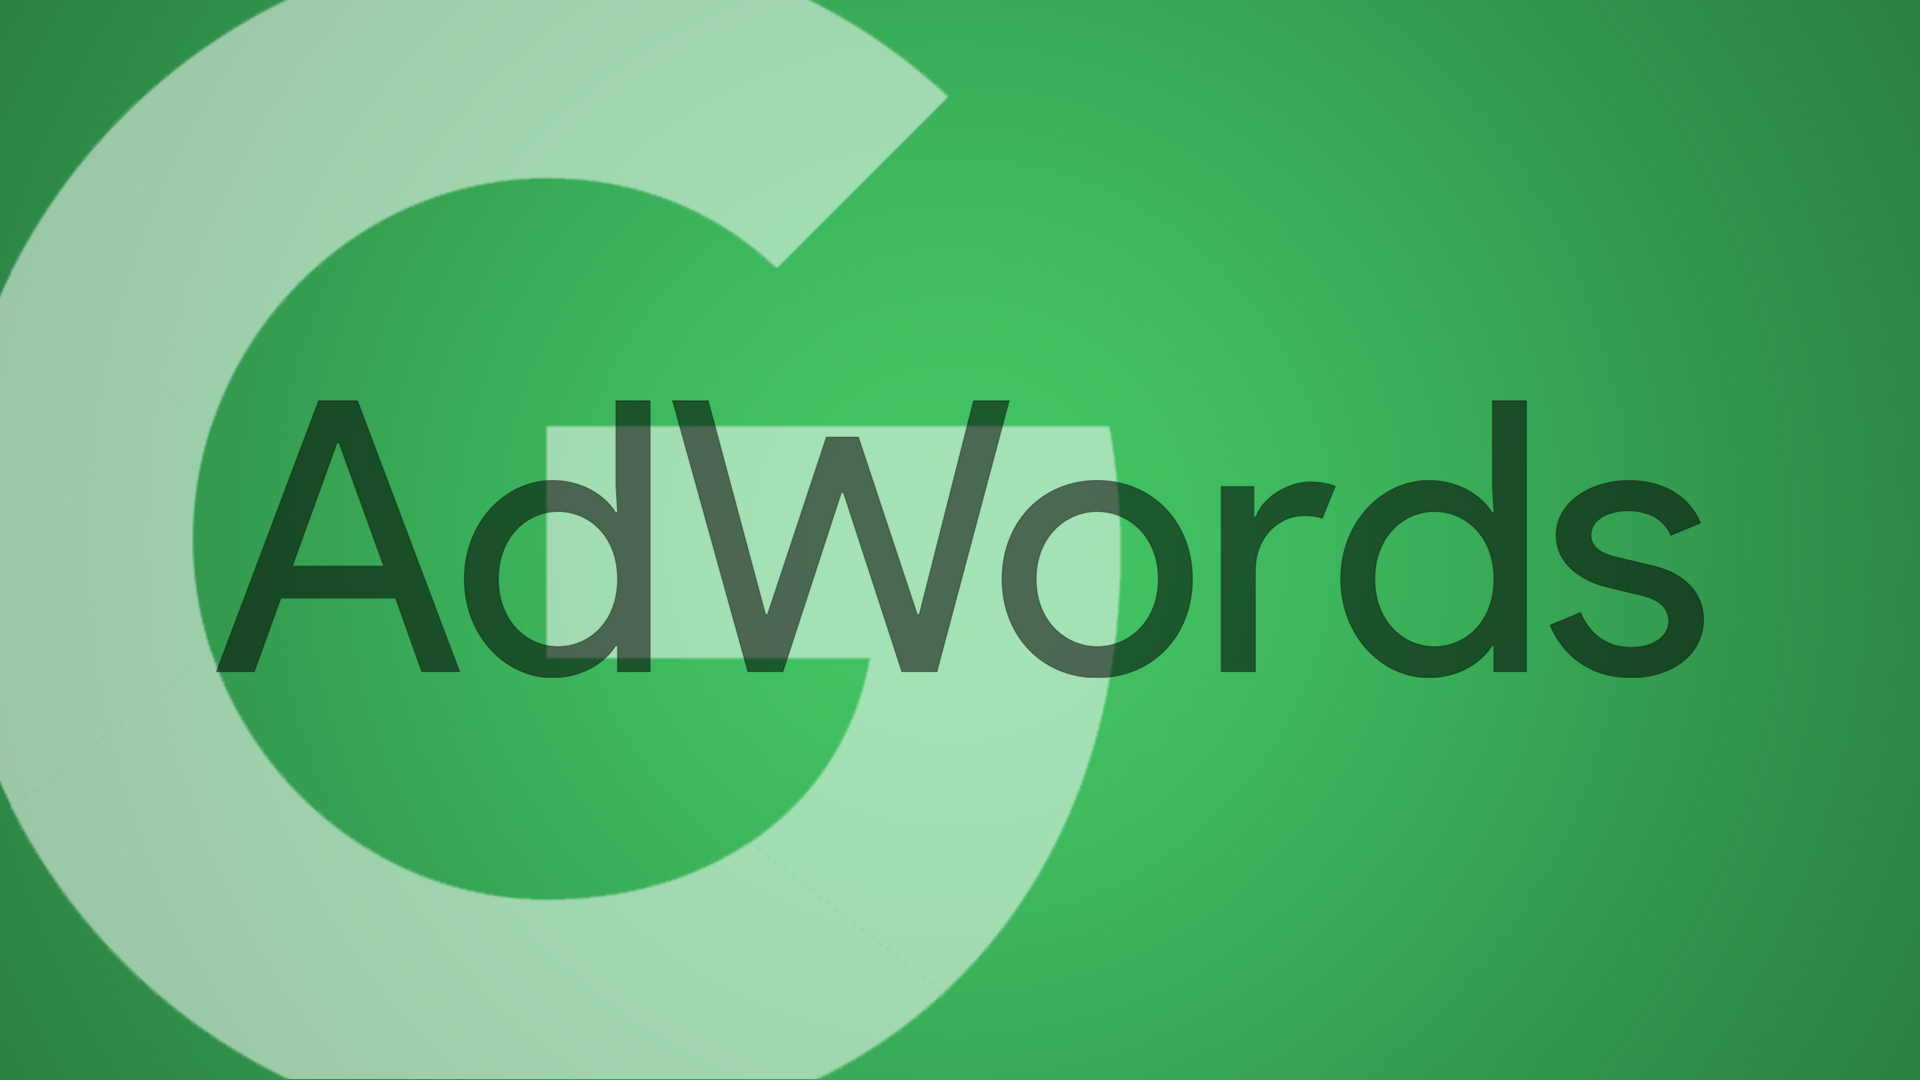 AdWords promotional code (coupon) is € 75. GERMANY